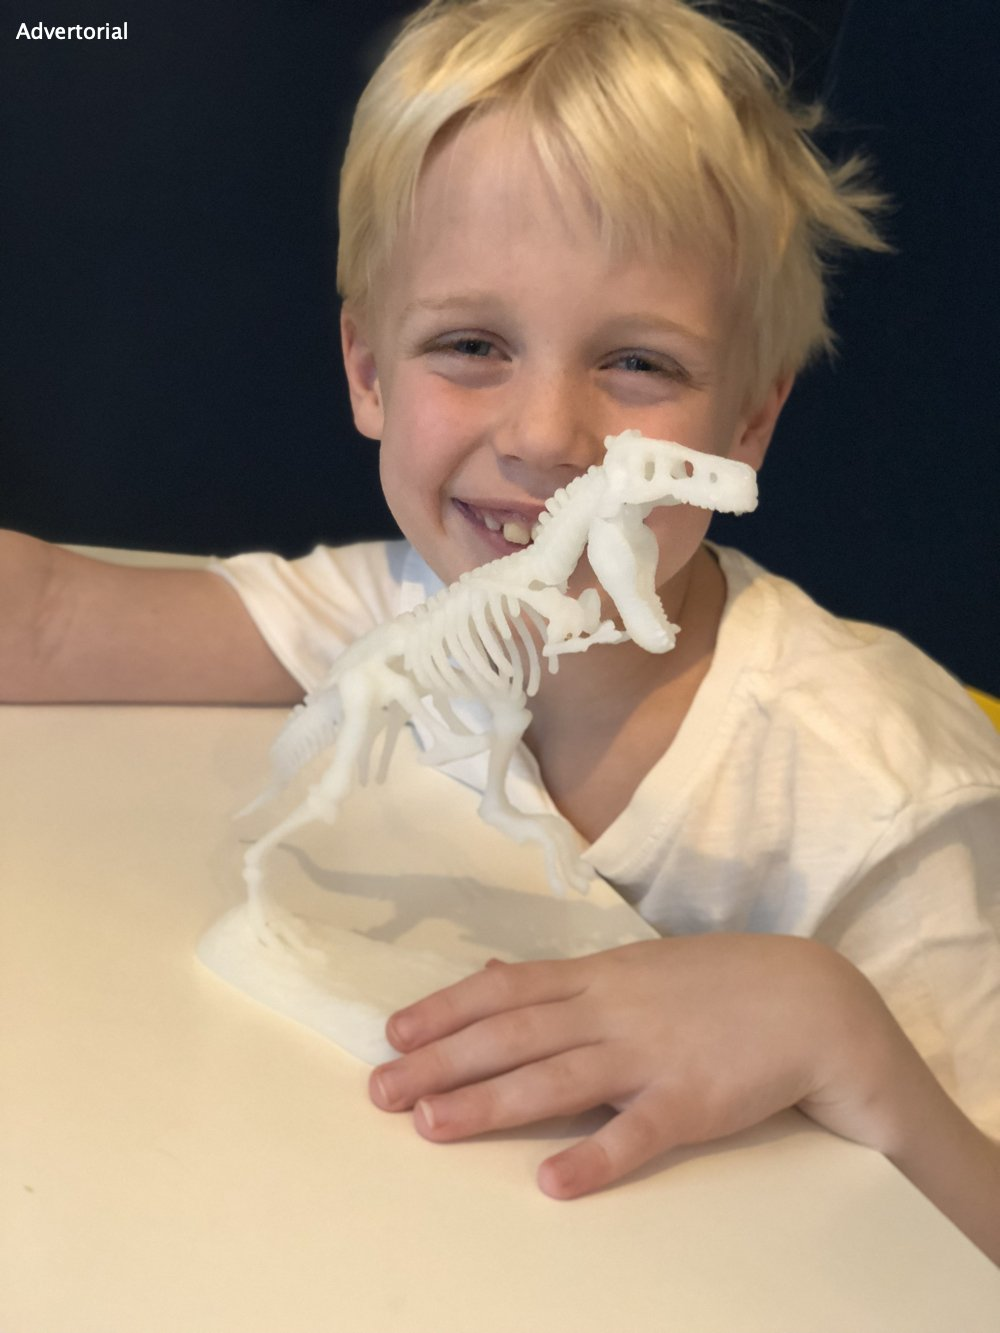 boy holding up a glow in the dark t-rex dinosaur skeleton from the archeofun science play kit